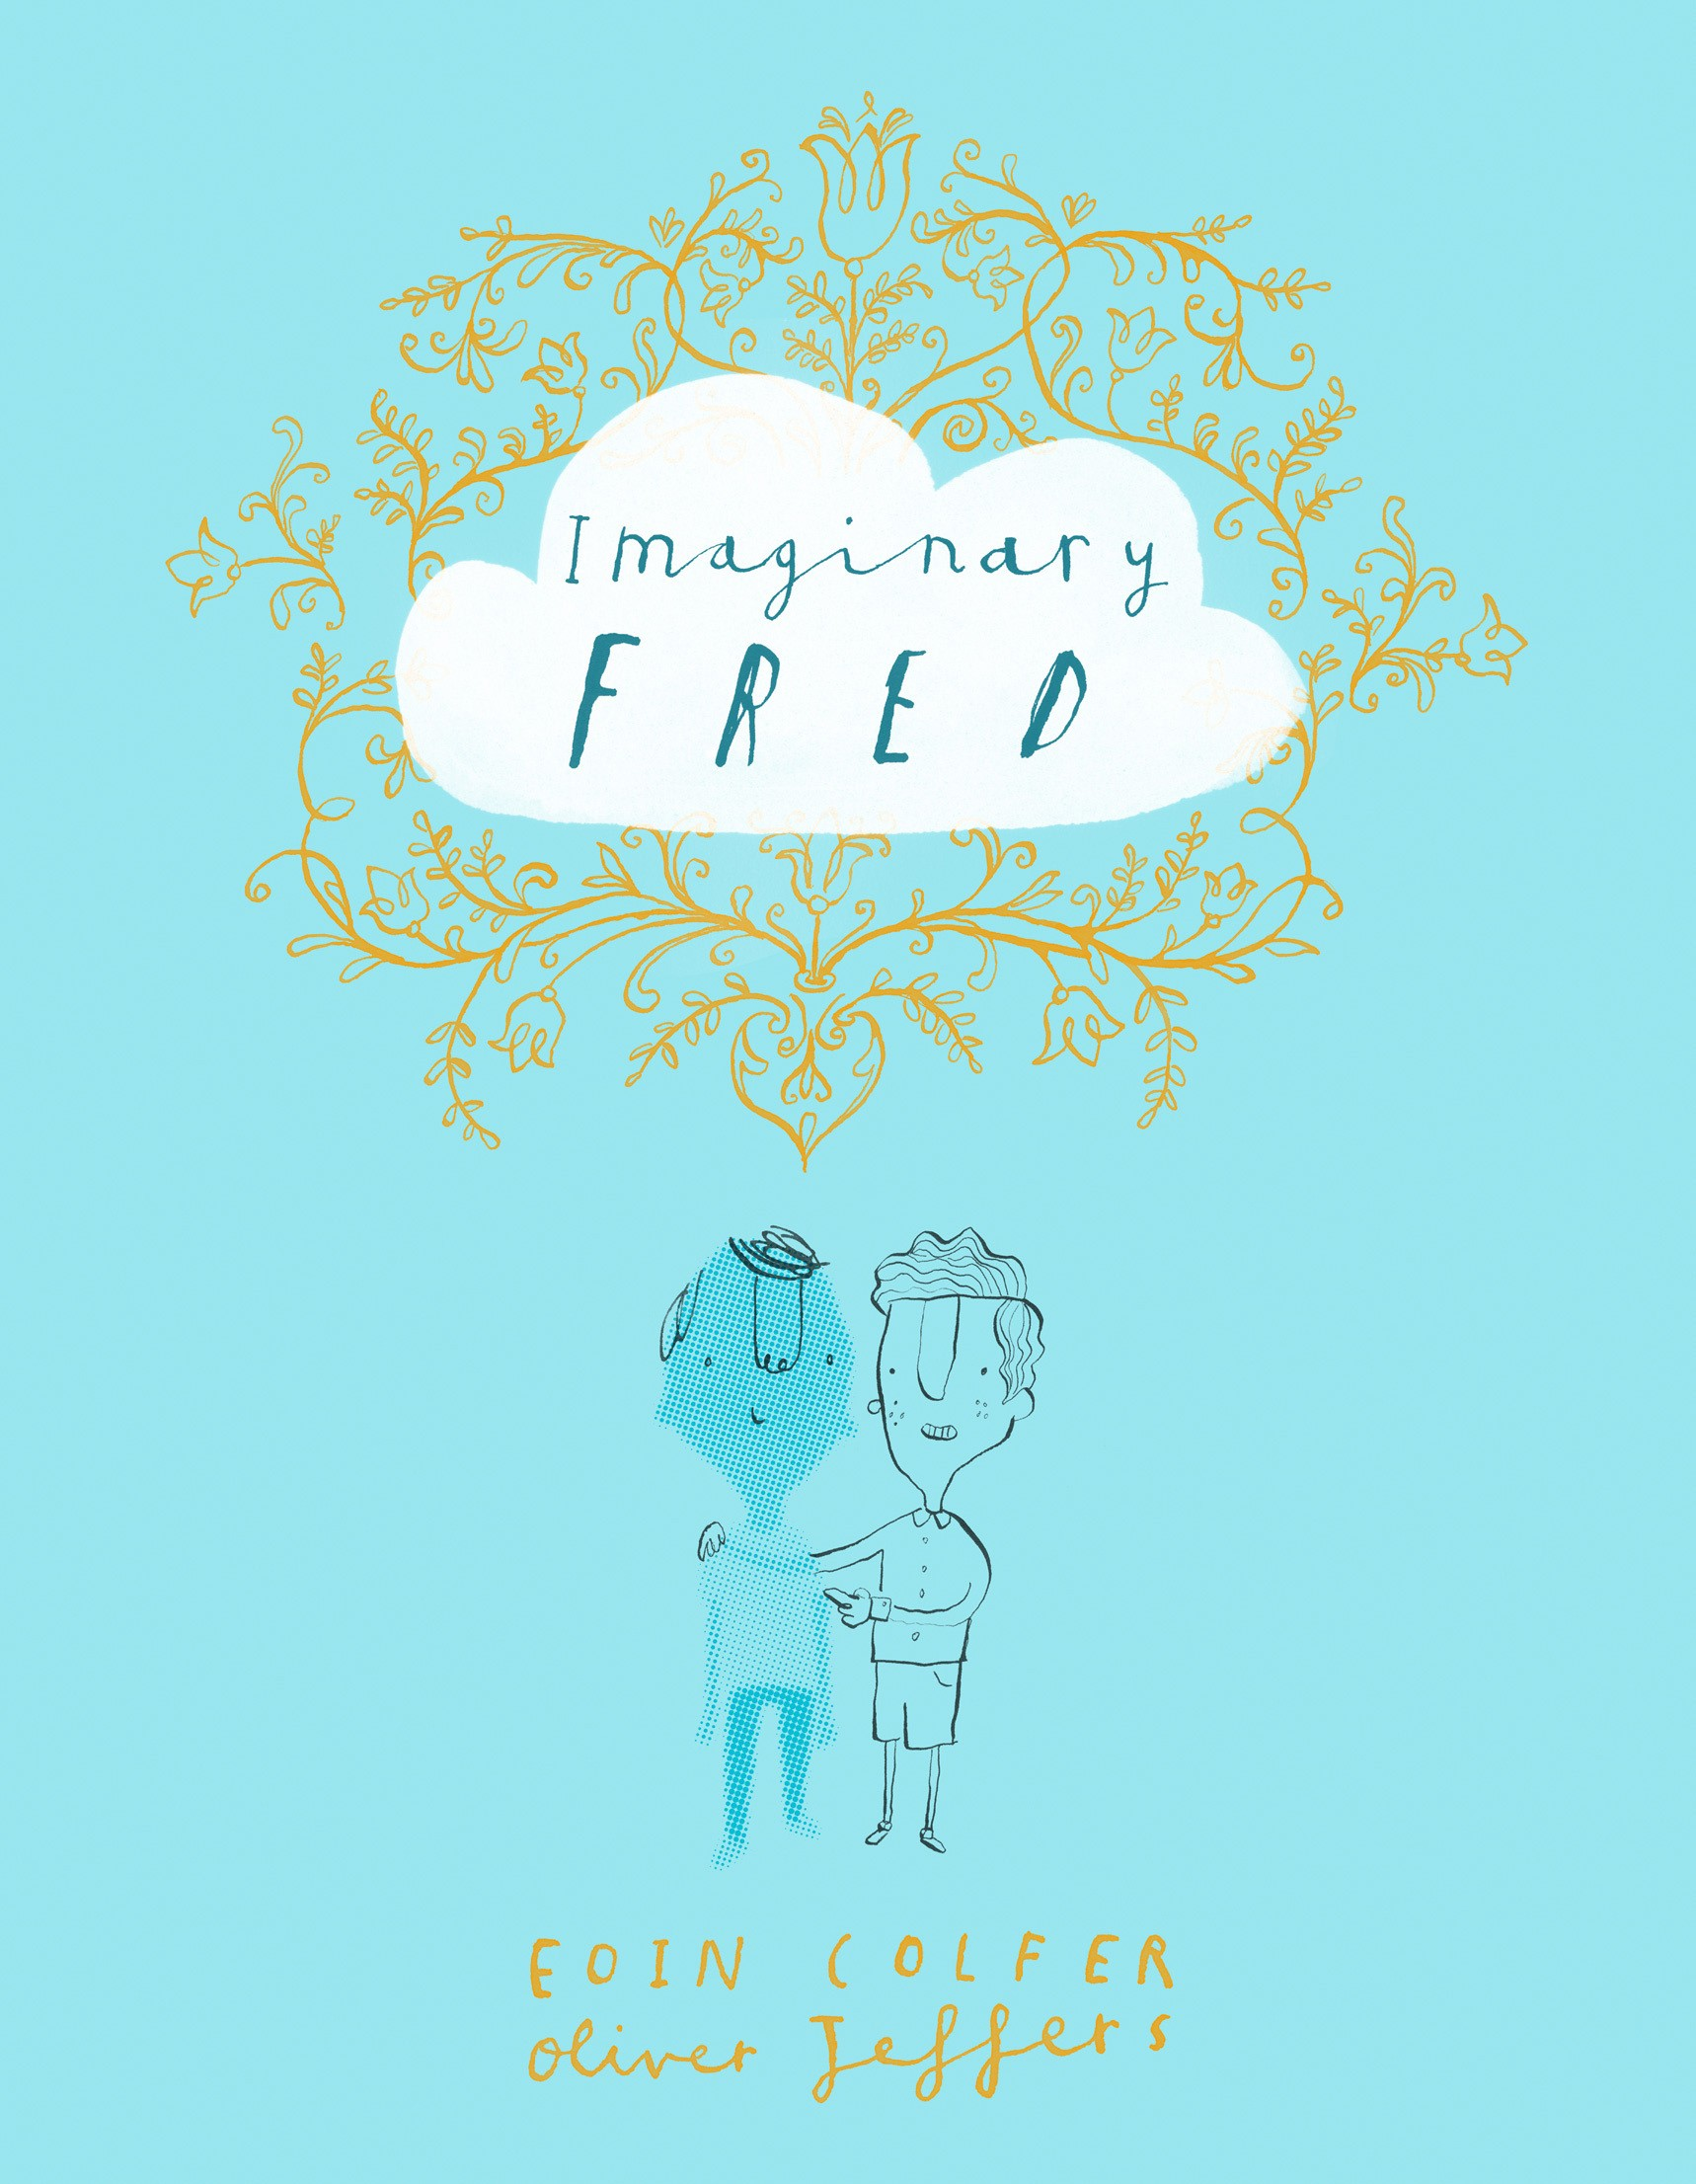 Imaginary Fred by Eoin Colfer,Oliver Jeffers, ISBN: 9780008126148